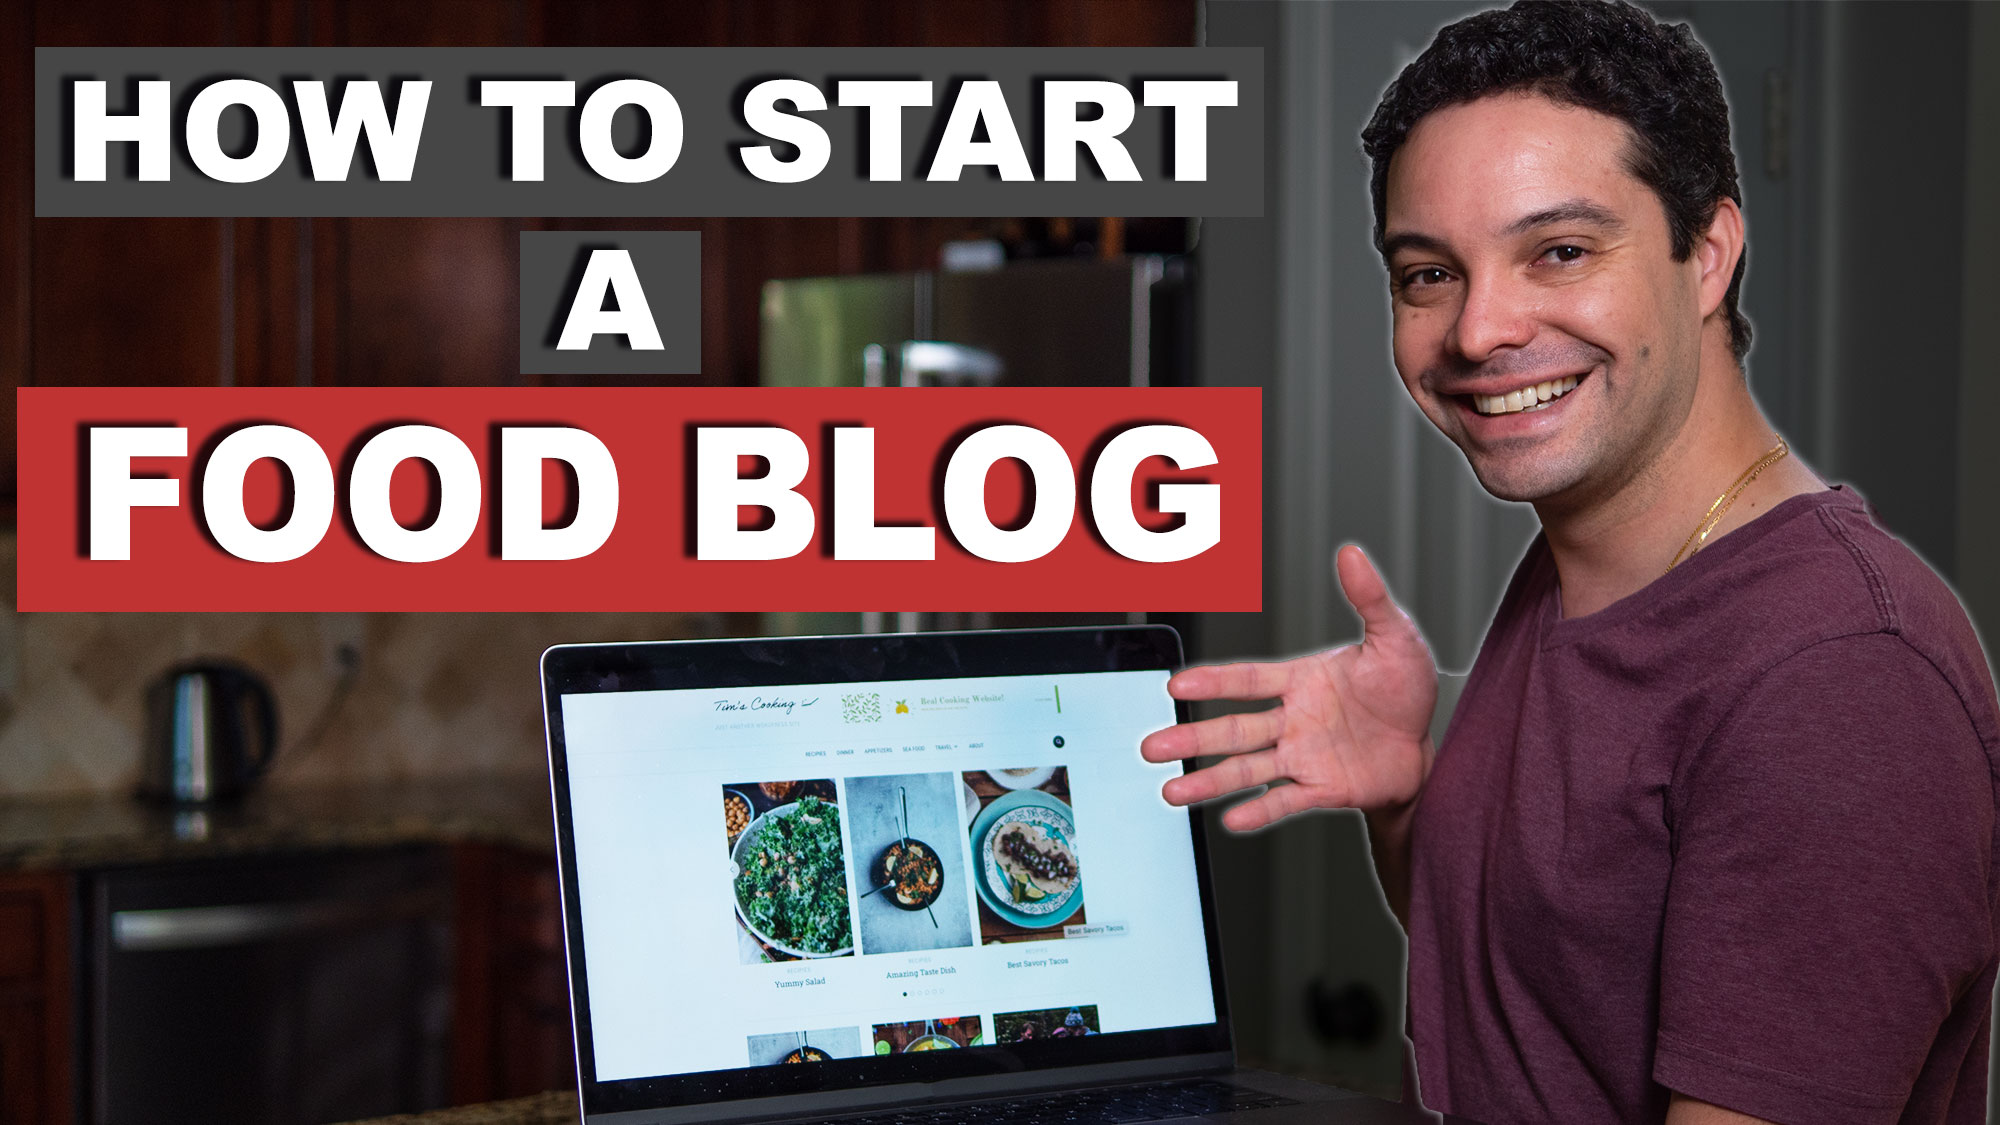 How to start a food blog image